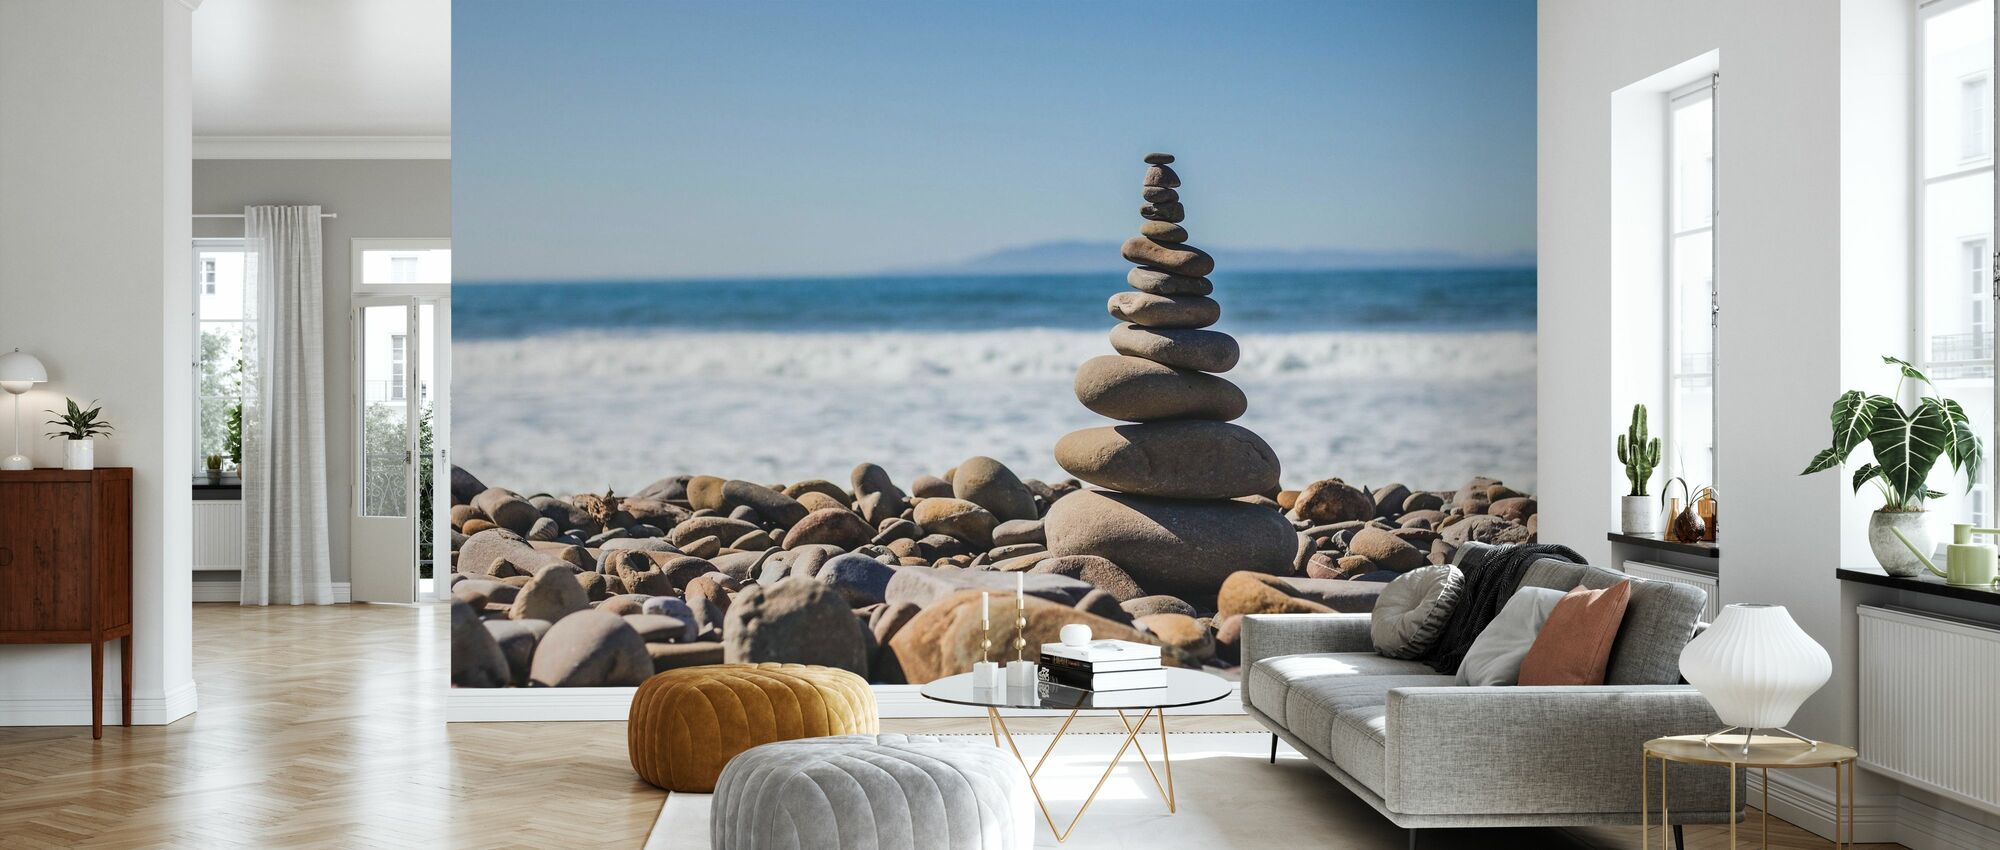 Pebble Tower - Wallpaper - Living Room